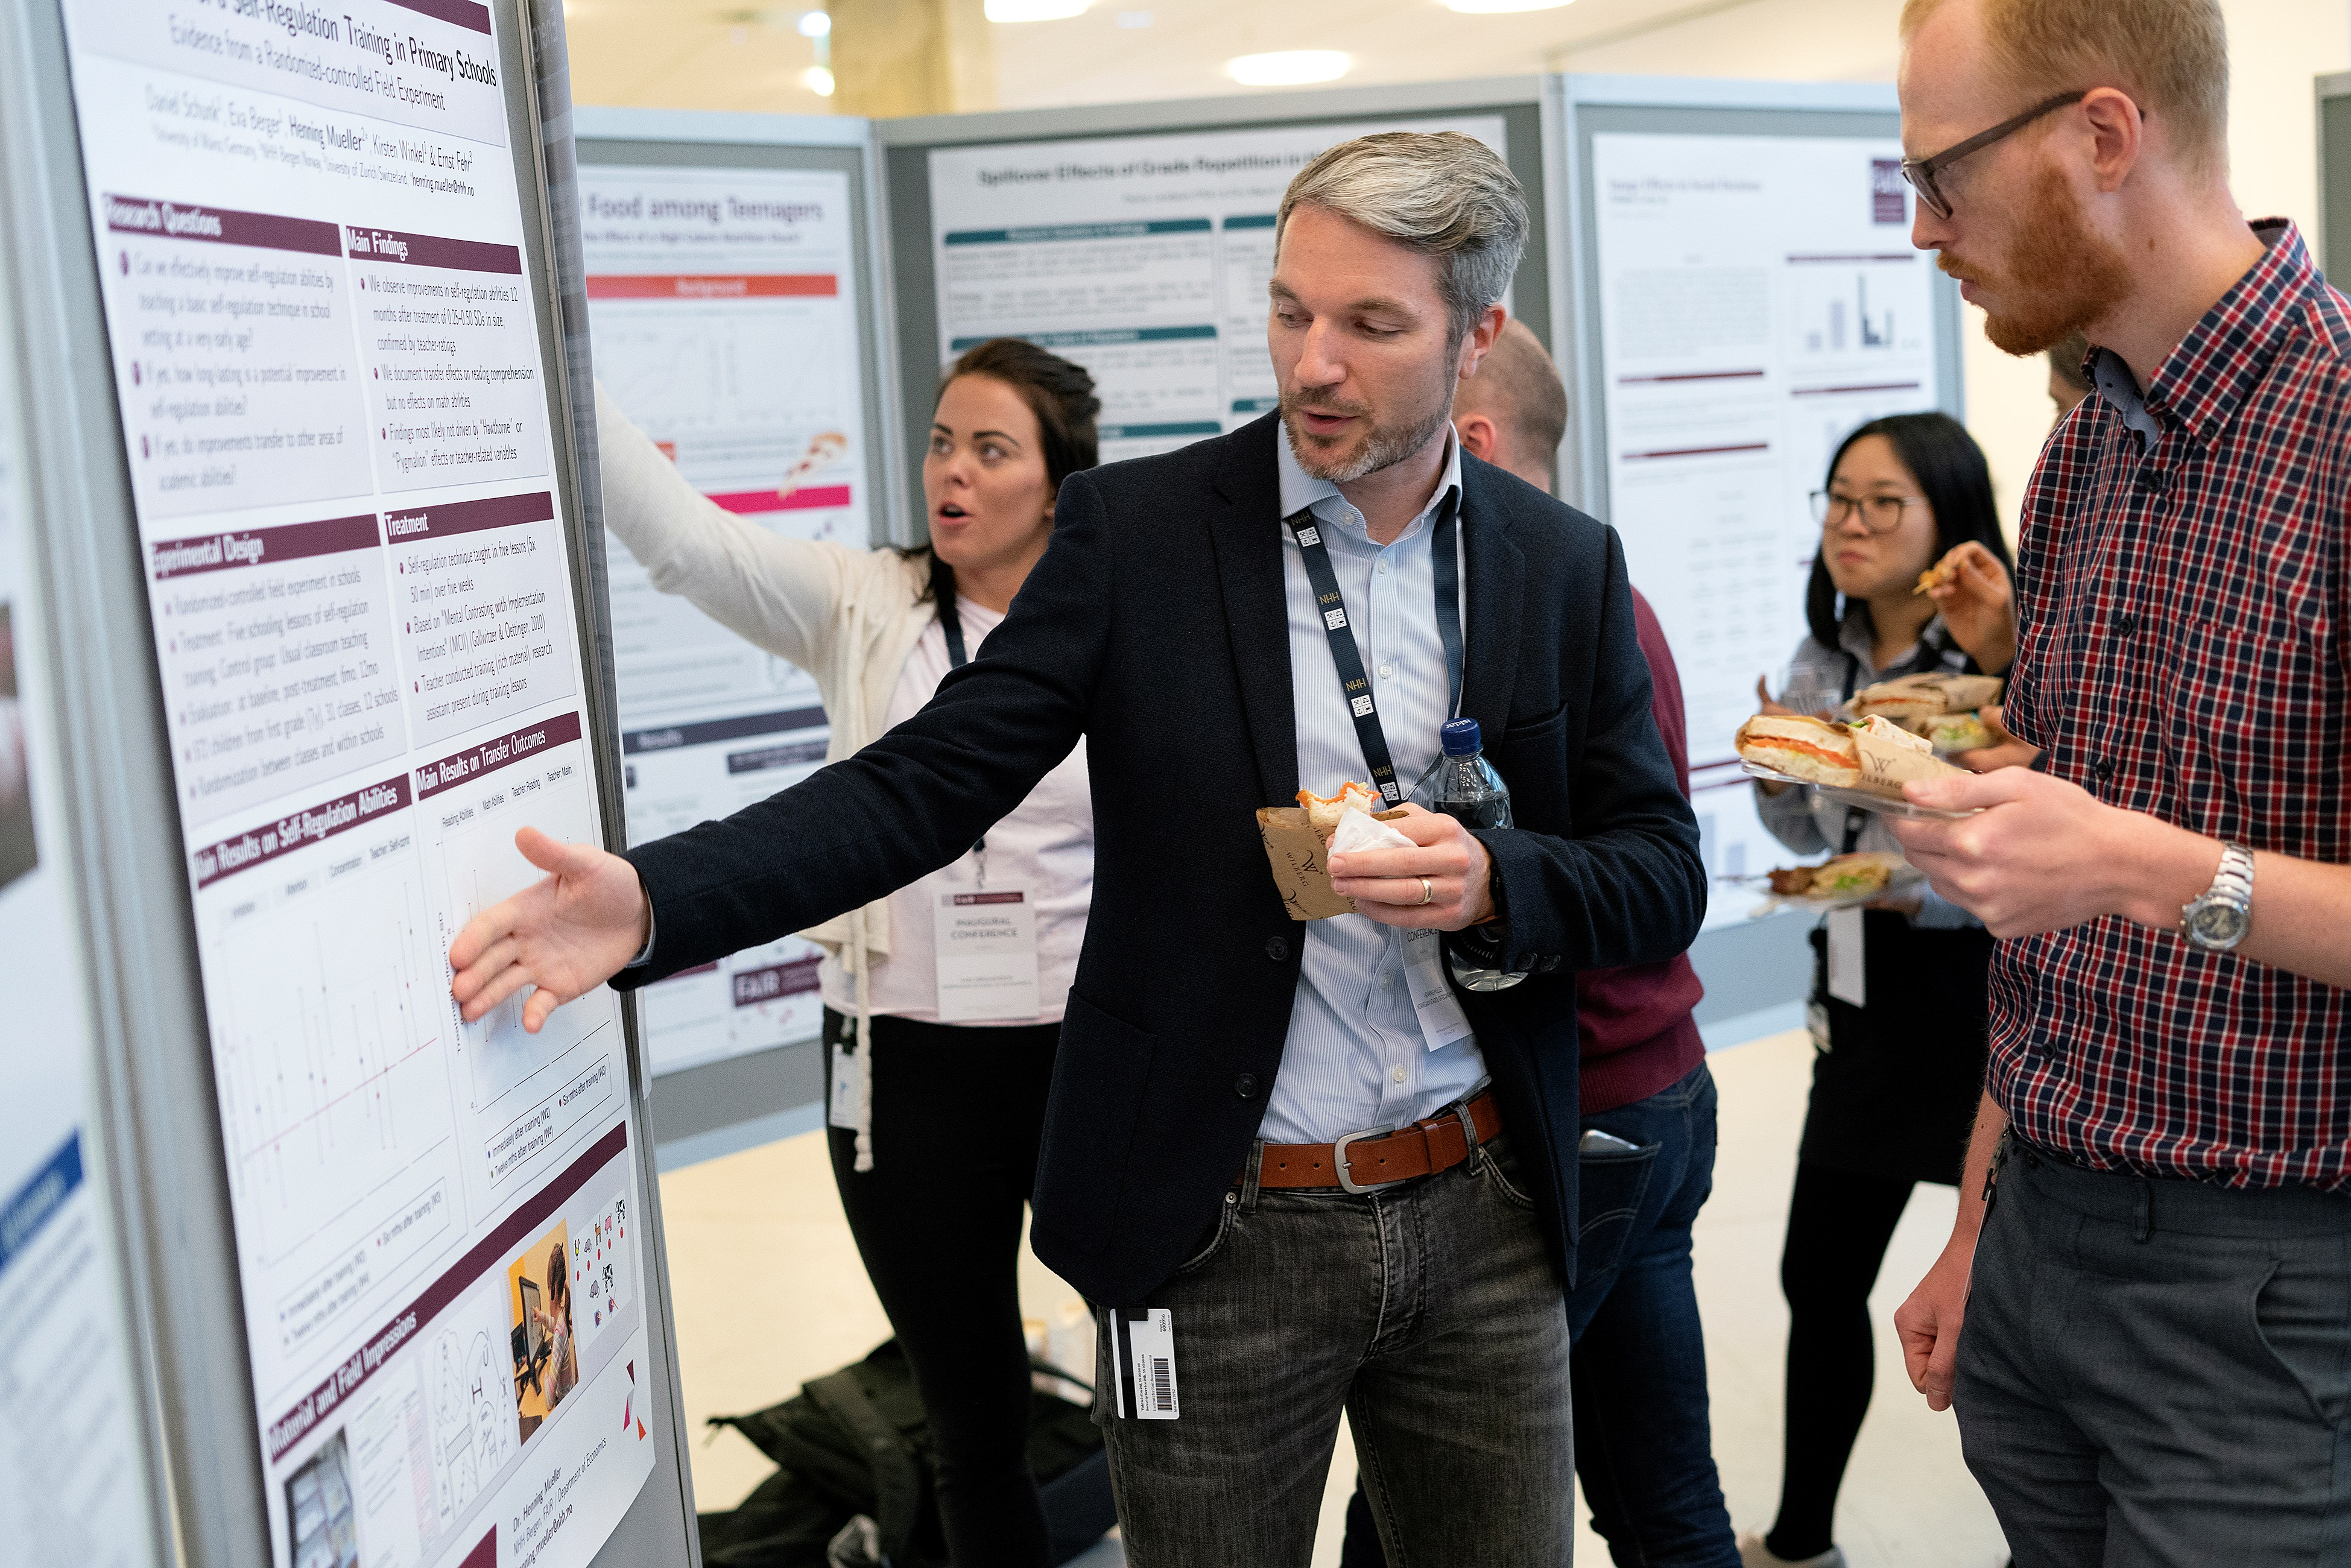 Henning Müller and Sigbjørn Råsberg at the poster session at FAIR Inaugural Conference.